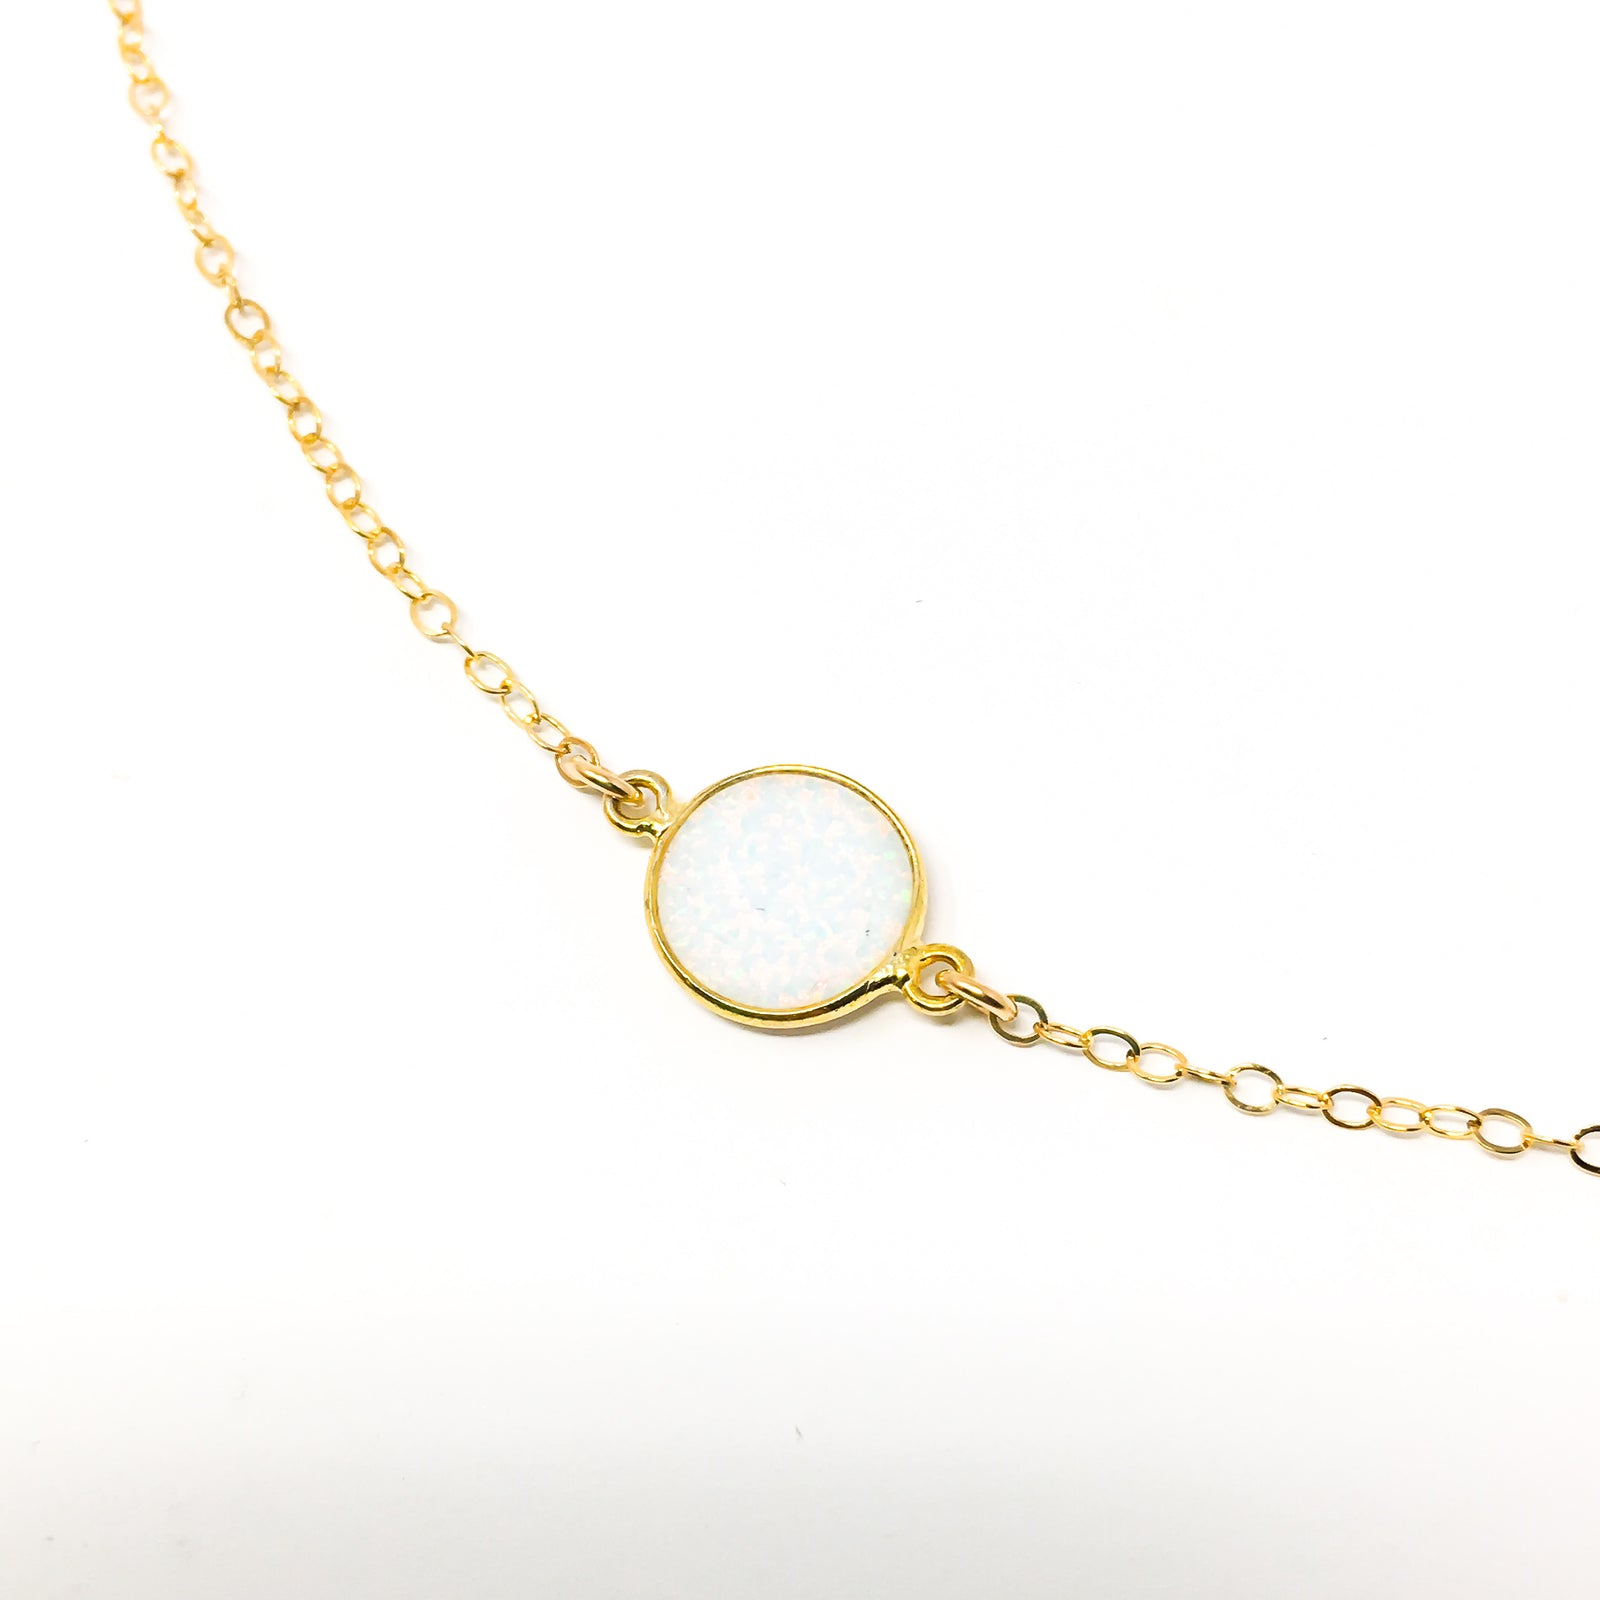 14K GOLD-FILLED HELD NECKLACES | LAB OPAL | SIZE OPTIONS